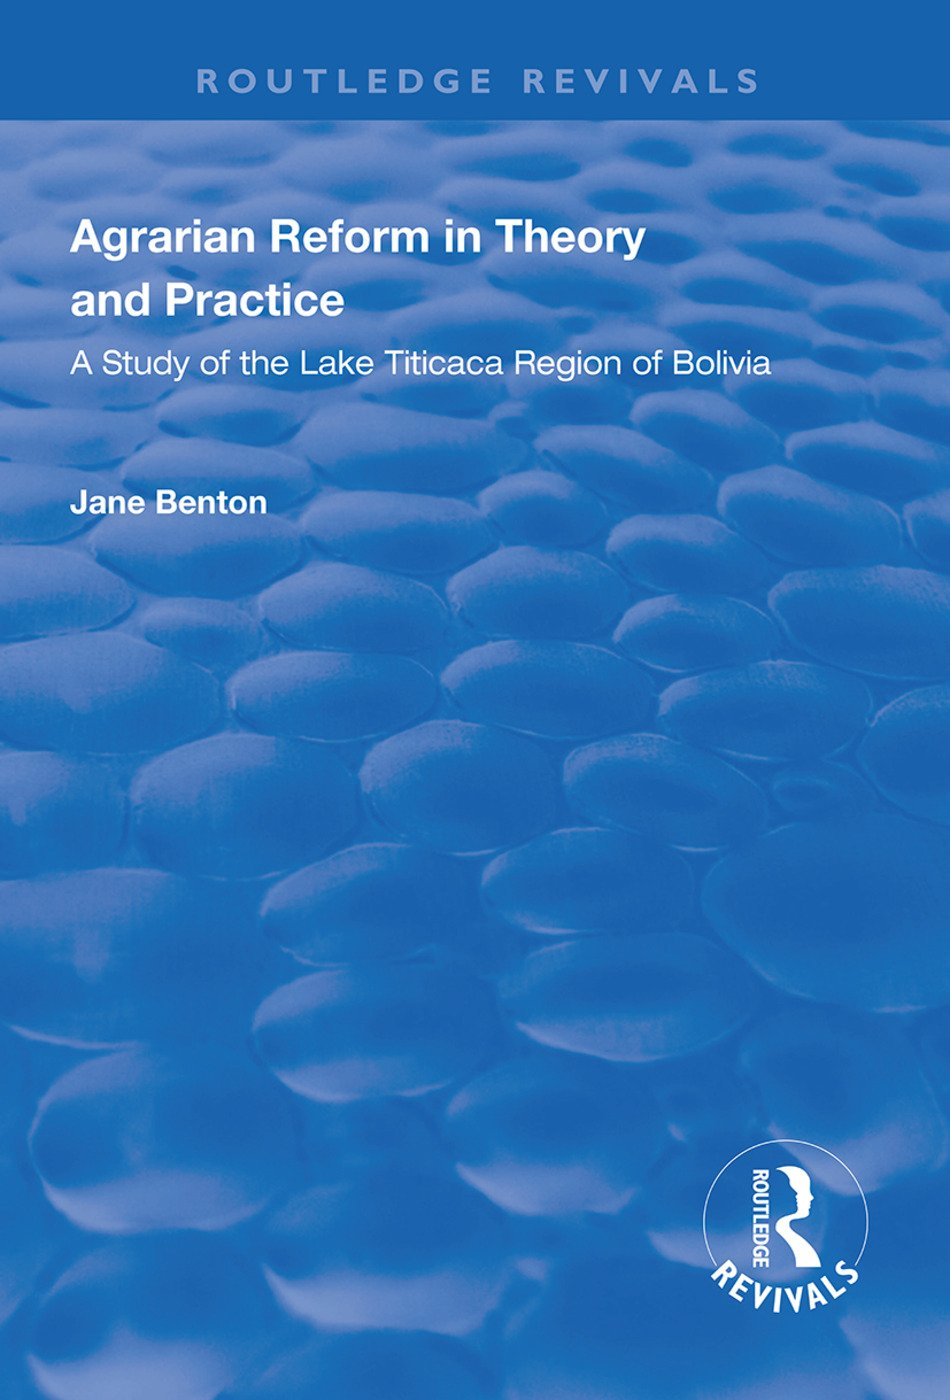 Agrarian Reform in Theory and Practice: A Study of the Lake Titicaca Region of Bolivia book cover